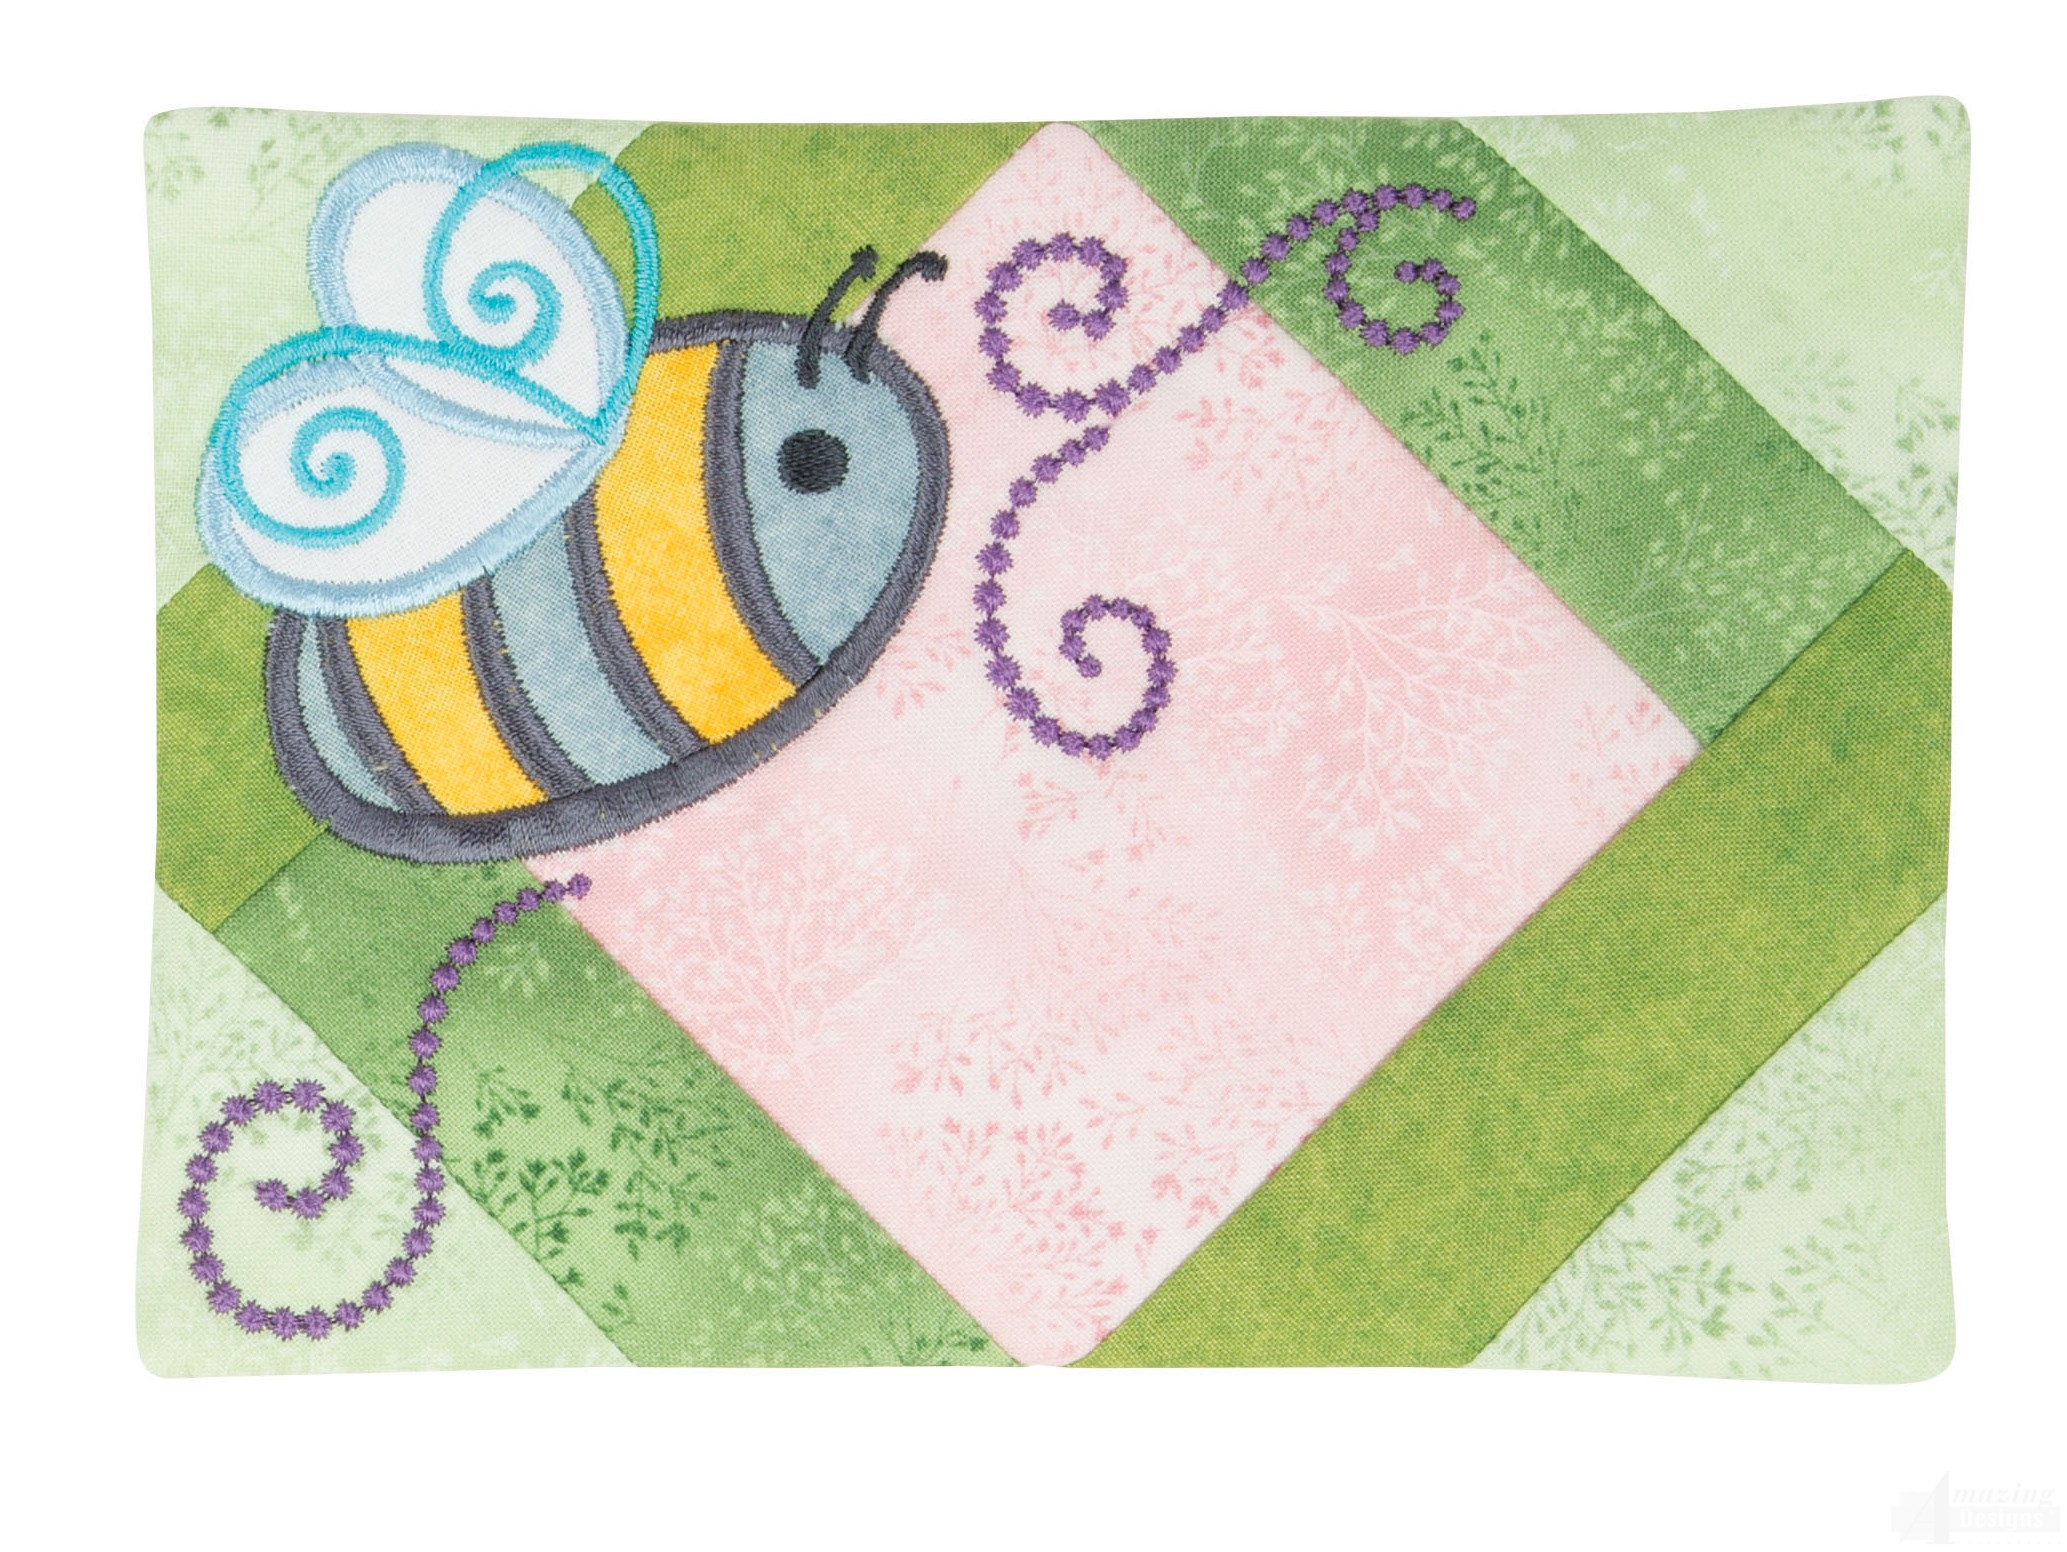 Pieced mug rug and busy bee embroidery design